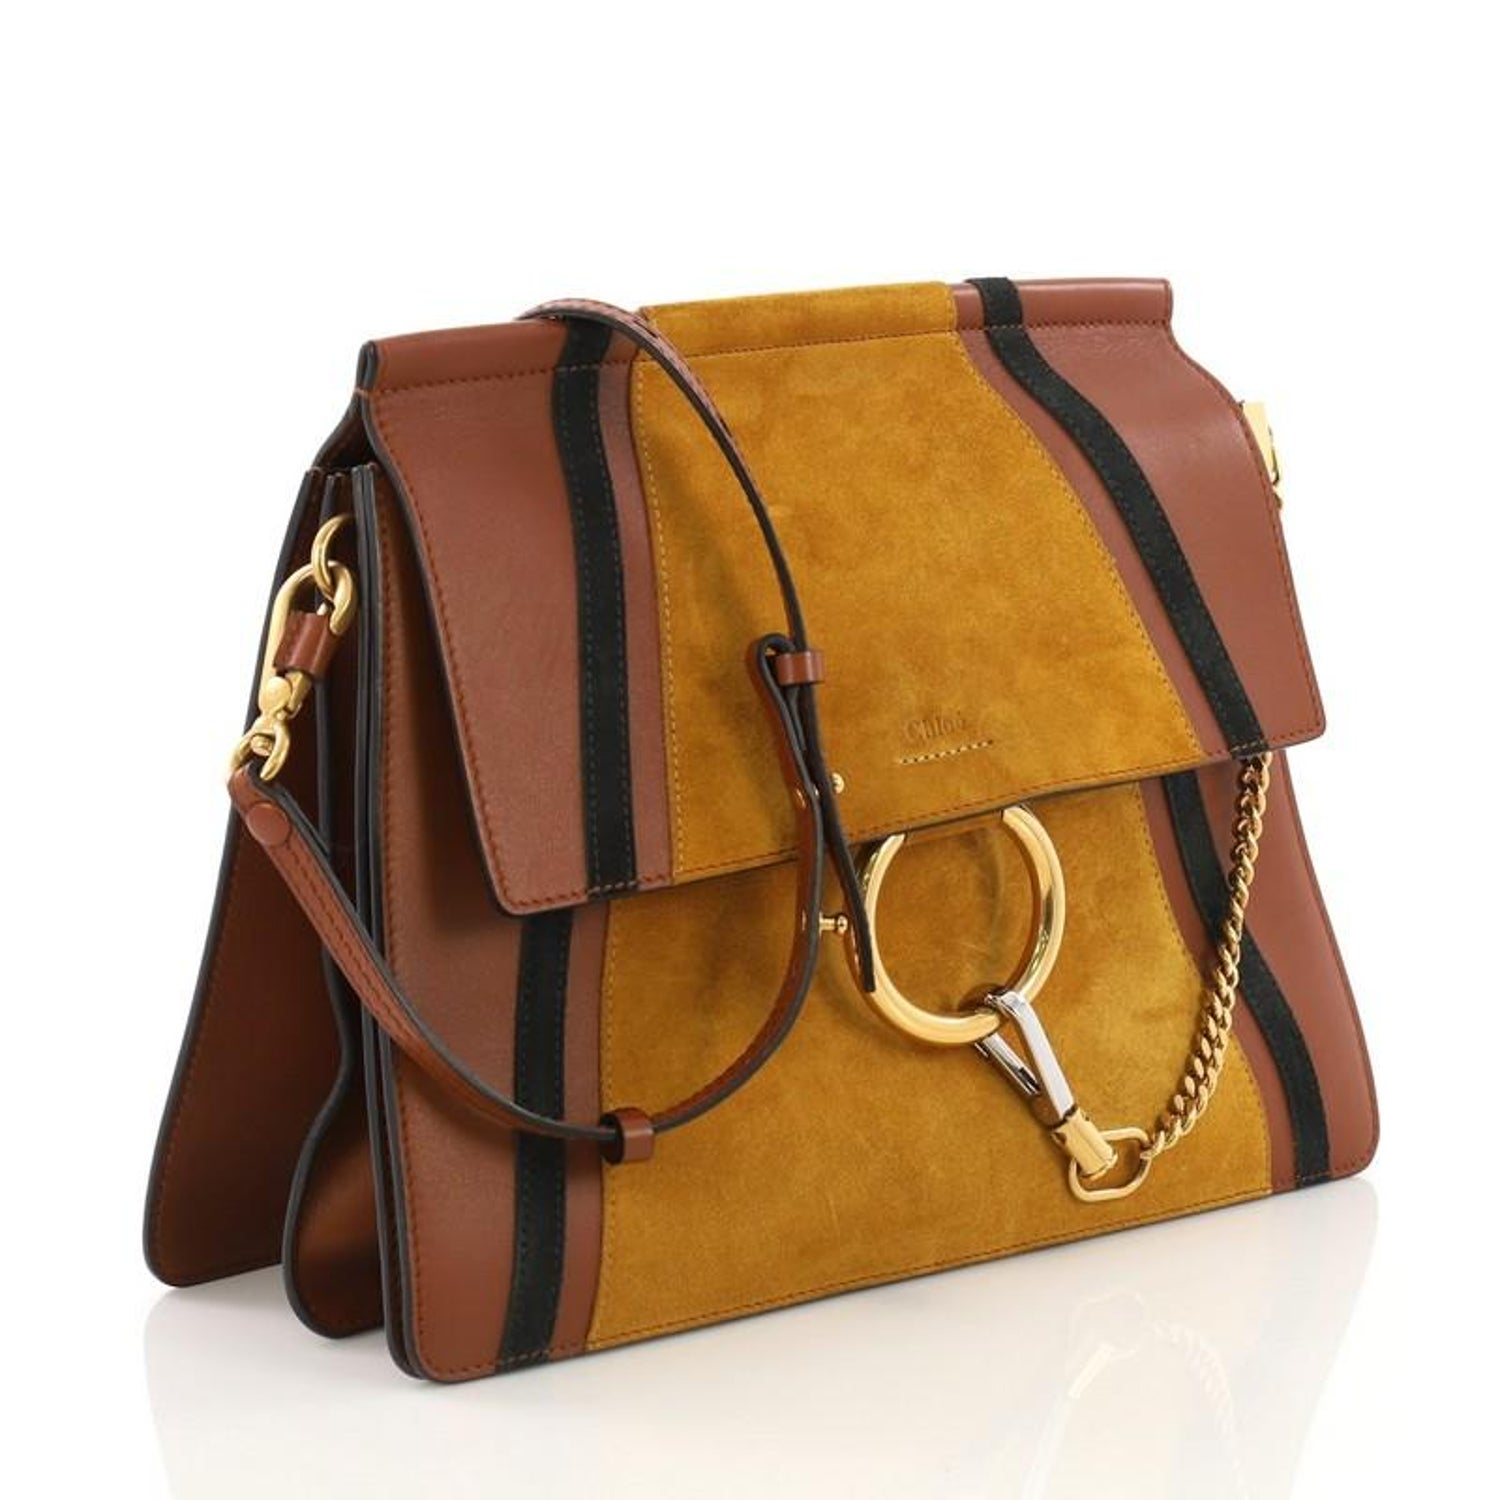 9ffbbe9226cfc Chloe Faye Patchwork Shoulder Bag Suede and Leather Medium at 1stdibs